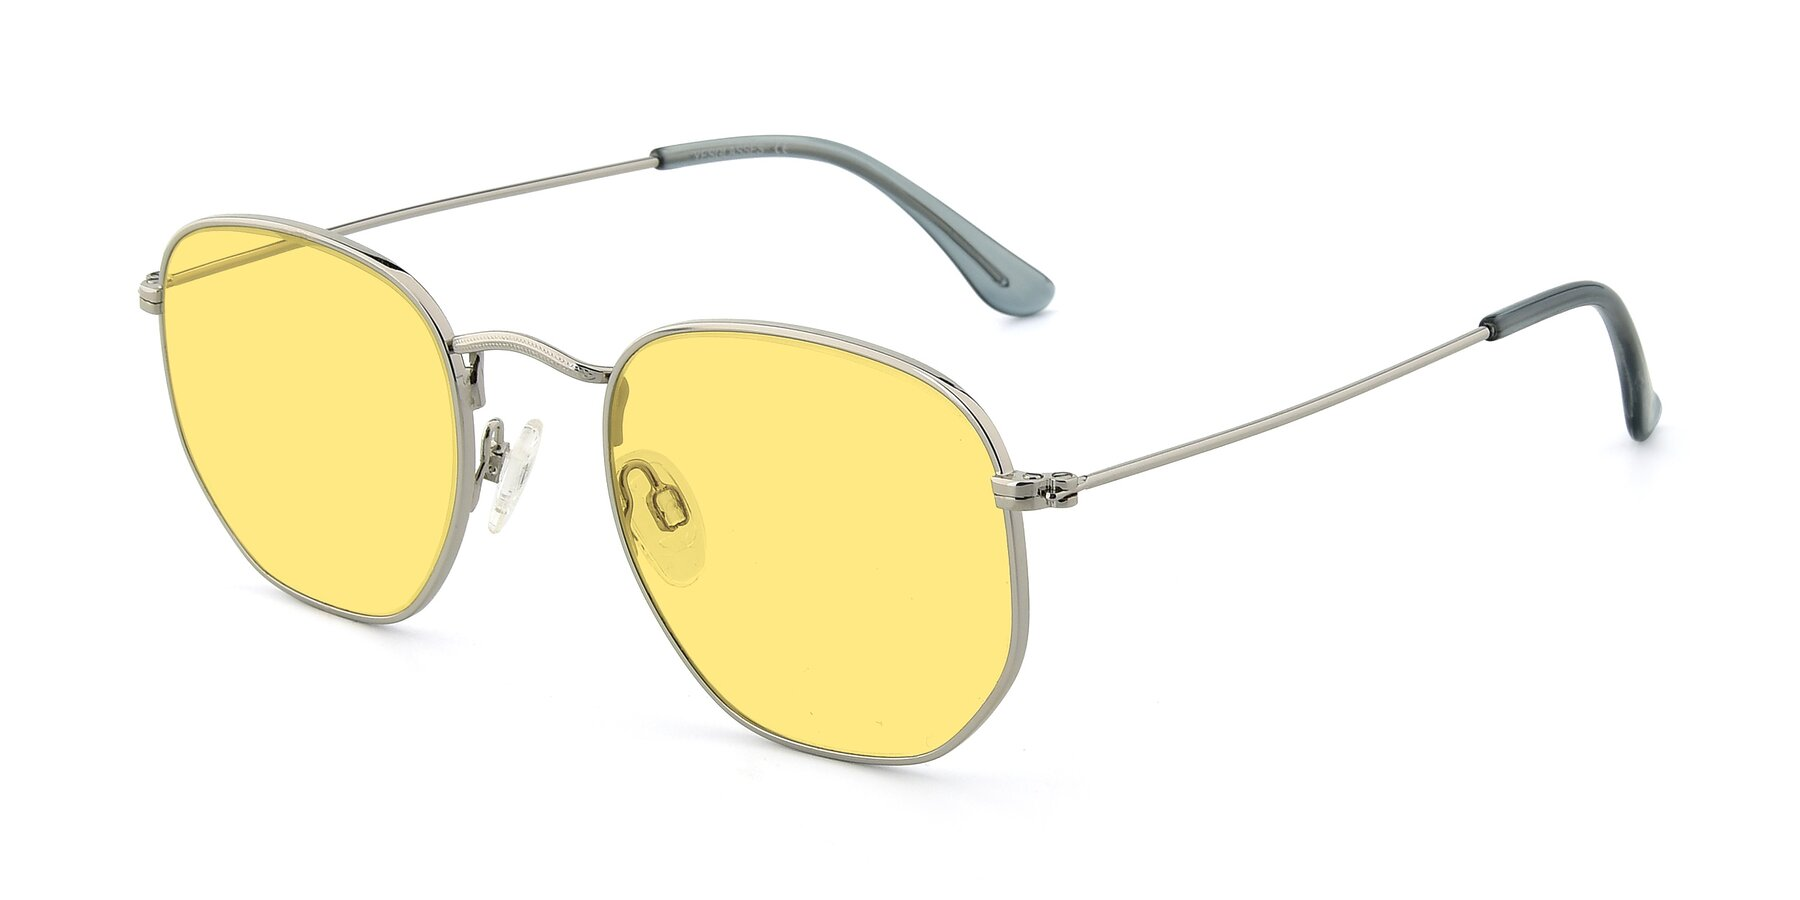 Angle of SSR1944 in Silver with Medium Yellow Tinted Lenses